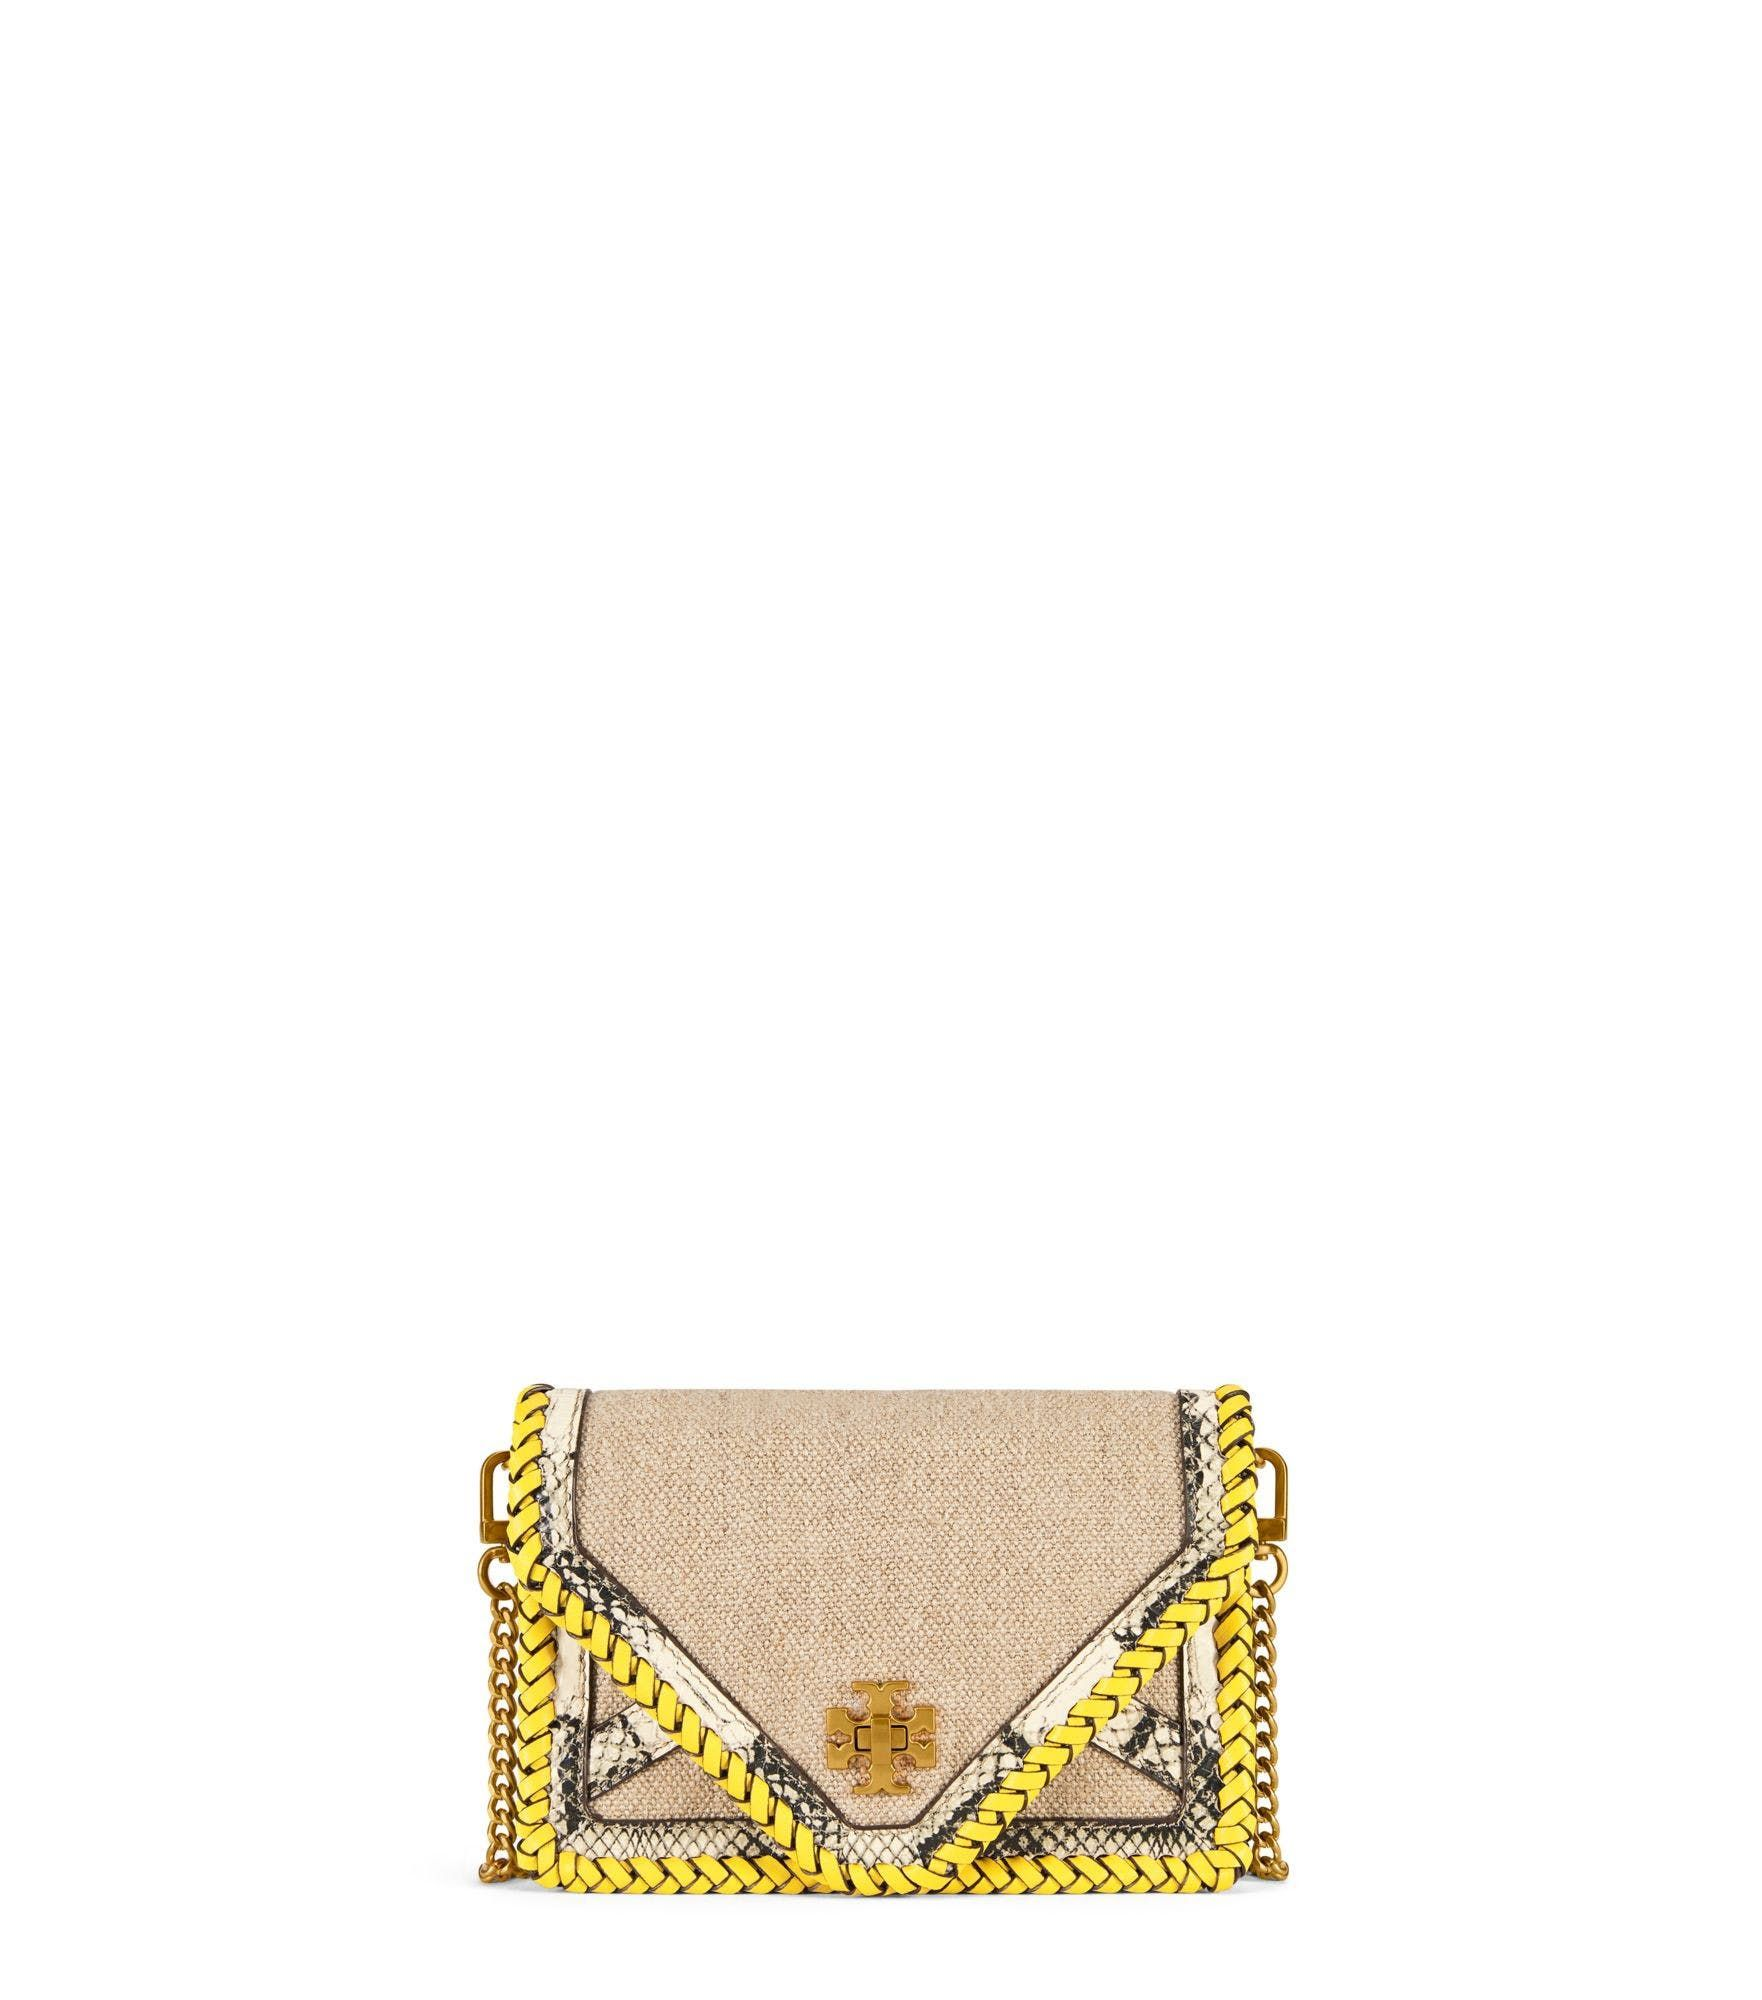 Kira Braided Canvas Mini Cross Body By Tory Burch Shoes Bags Fleming Convert Medium Visit To Shop For And More Womens View All Find Designer Handbags Clothing Of This Seasons